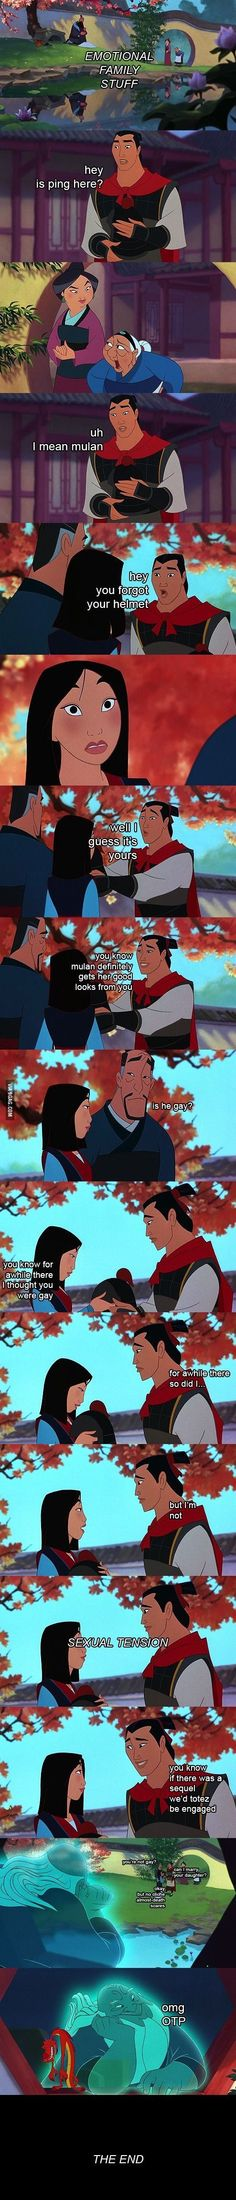 Mulan: Shang's Journey of Self Discovery Part VI